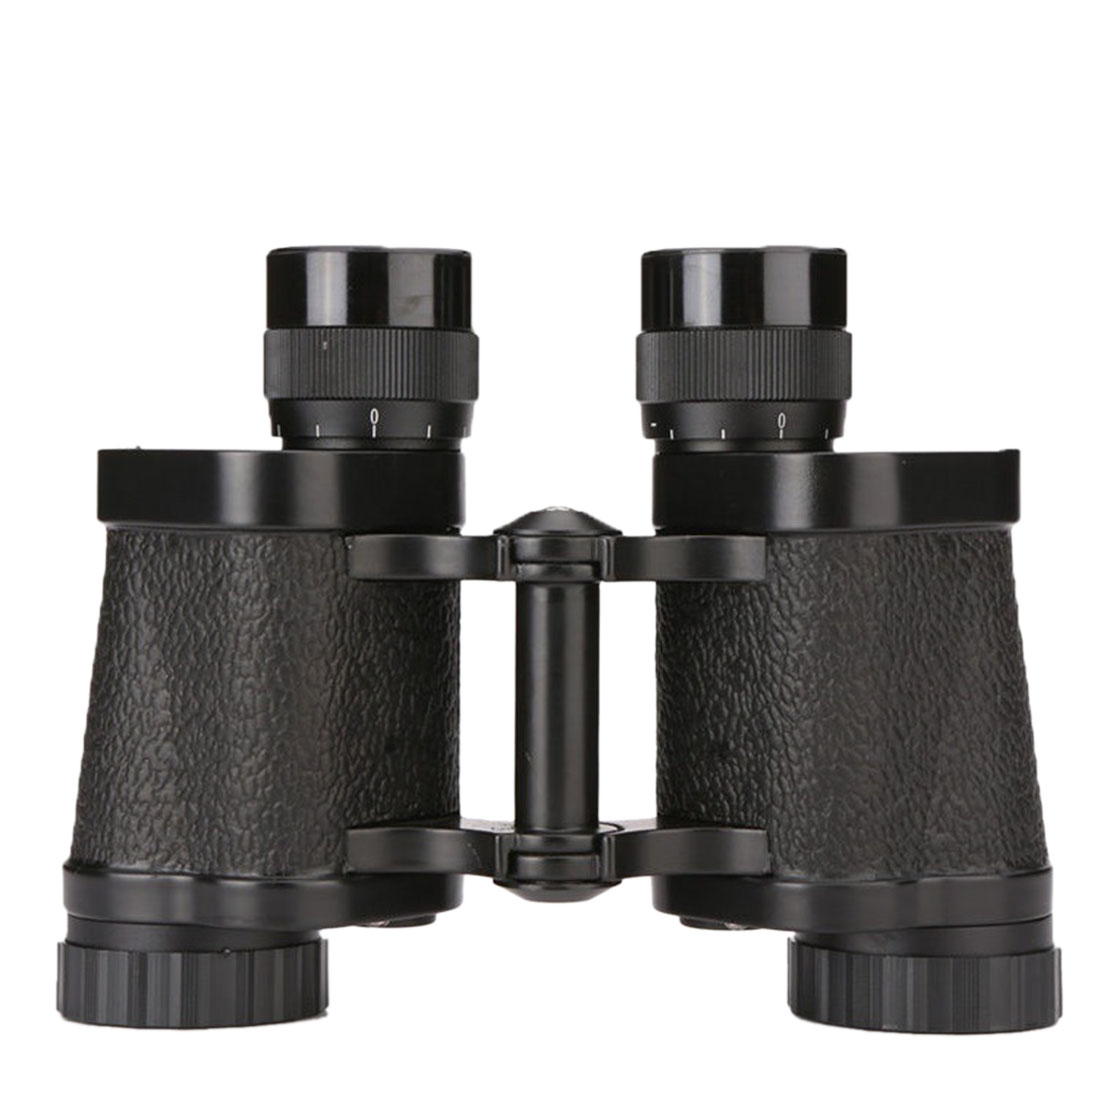 62Type 8X30 Waterproof Military Binoculars Telescope Rangefinder Military Binocular for Outdoor Hunting Equipment High Quality in Monocular Binoculars from Sports Entertainment